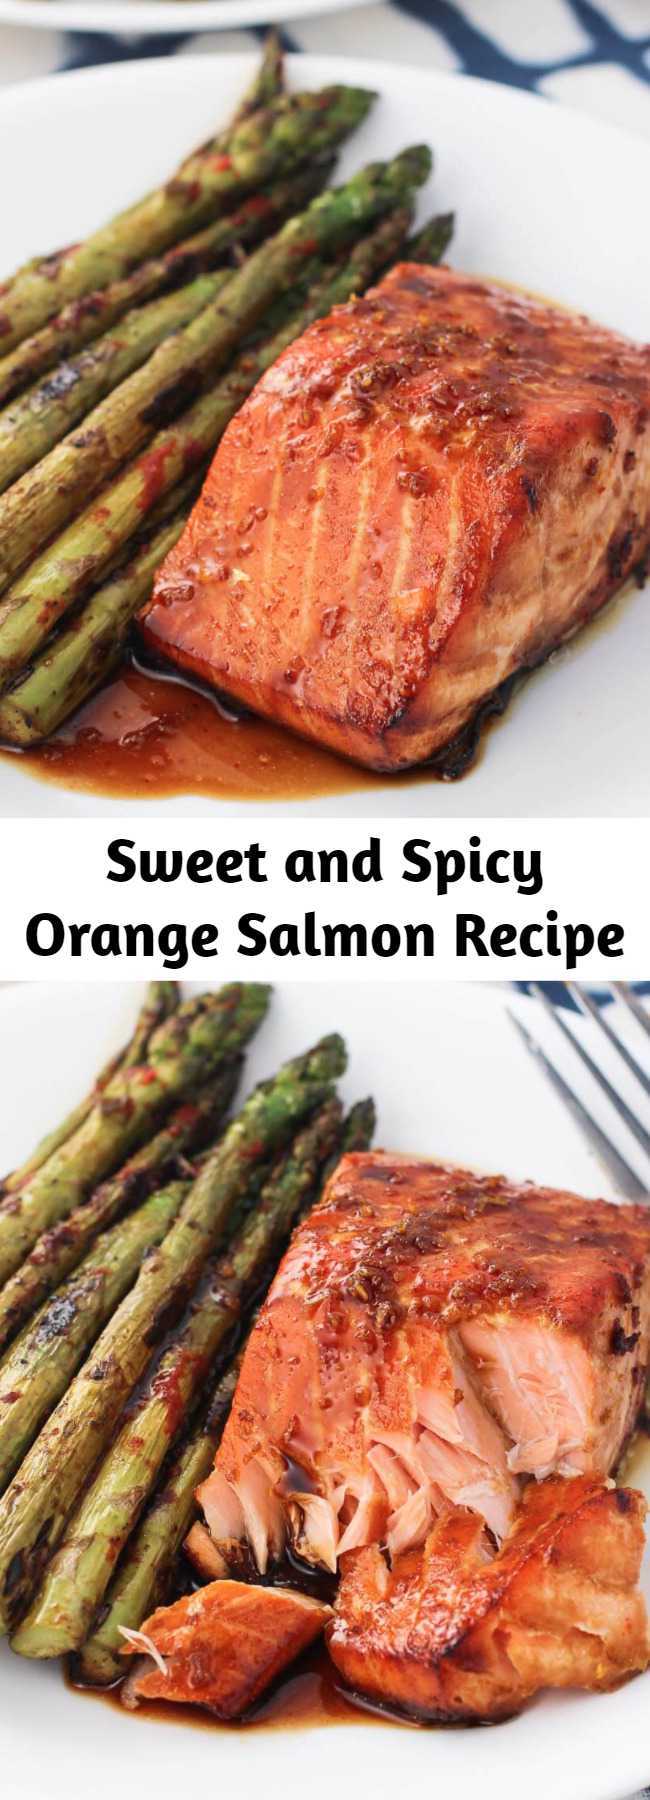 Sweet and Spicy Orange Salmon Recipe - Today I'm excited to share one of my recent favorite dinners - sweet and spicy orange salmon. It's a healthy dinner idea that is quick and easy.